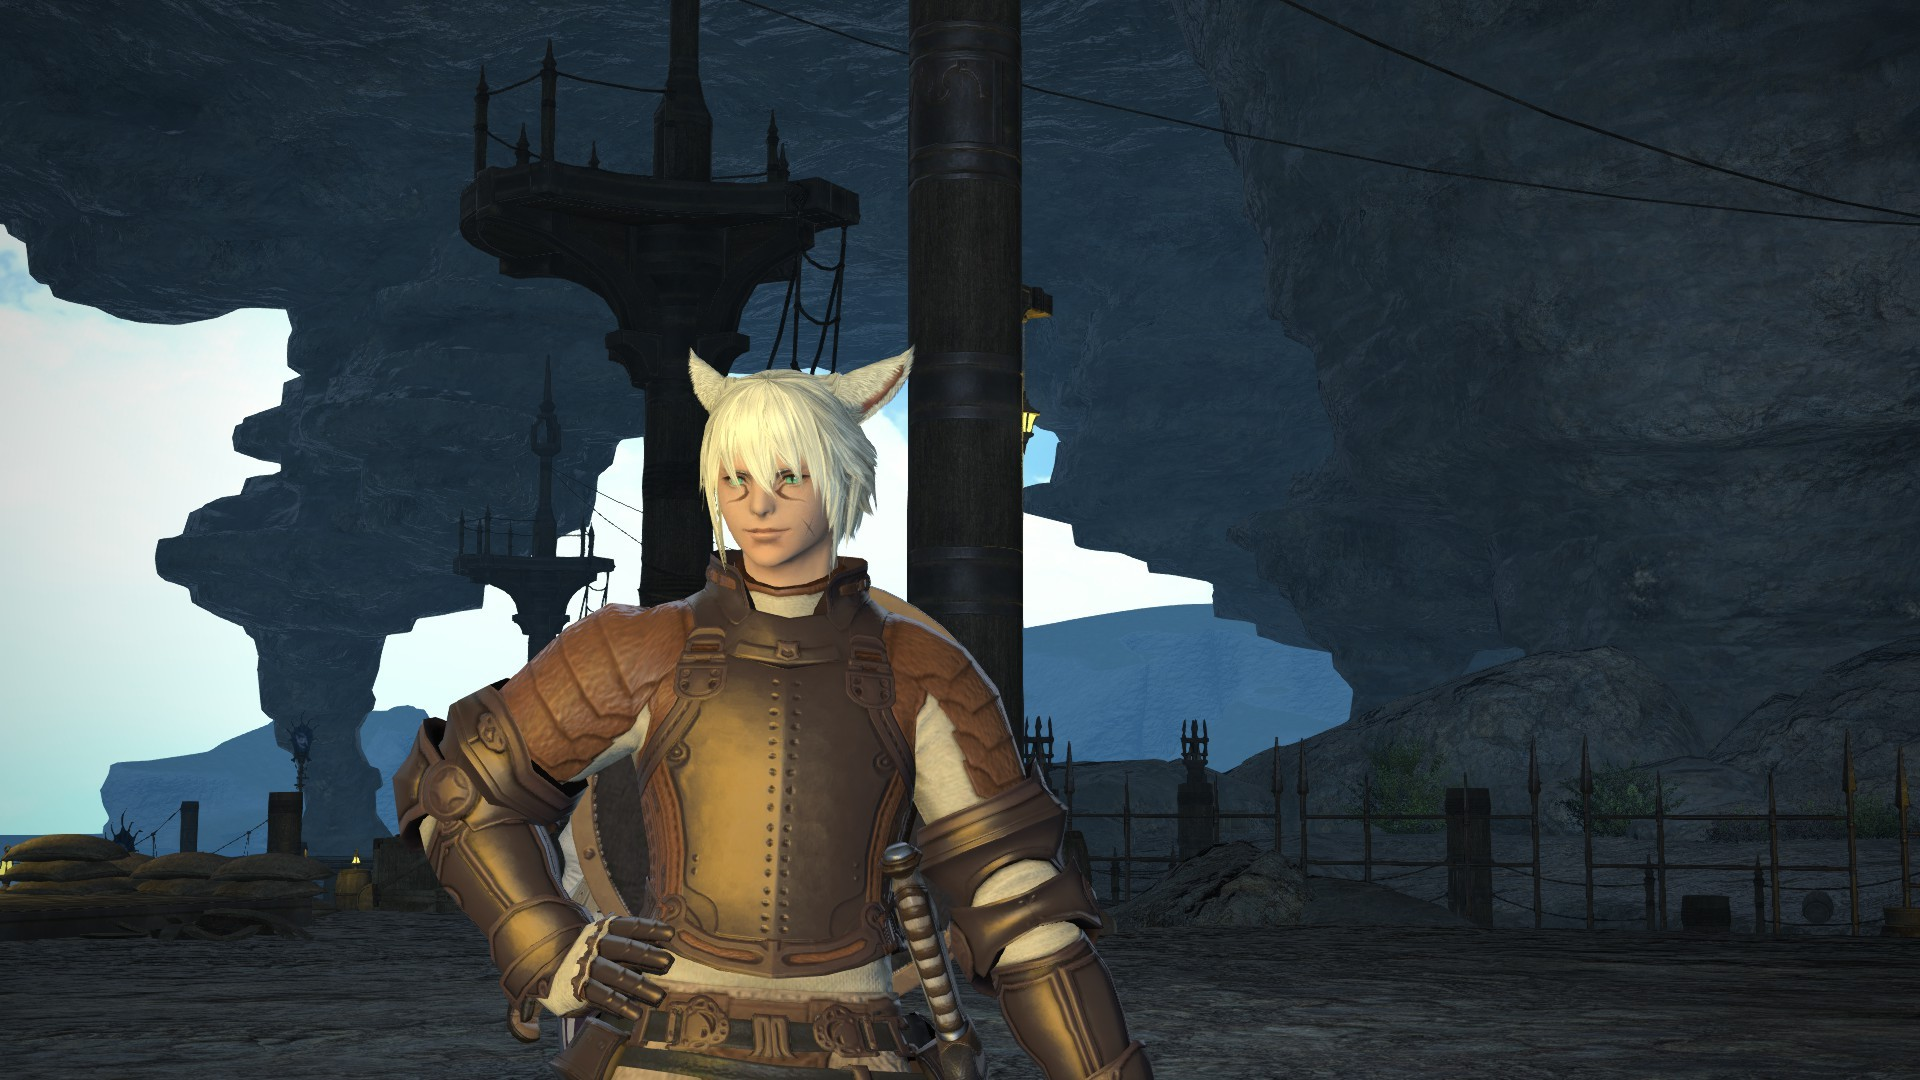 Final Fantasy XIV: A Realm Reborn - A job well done.